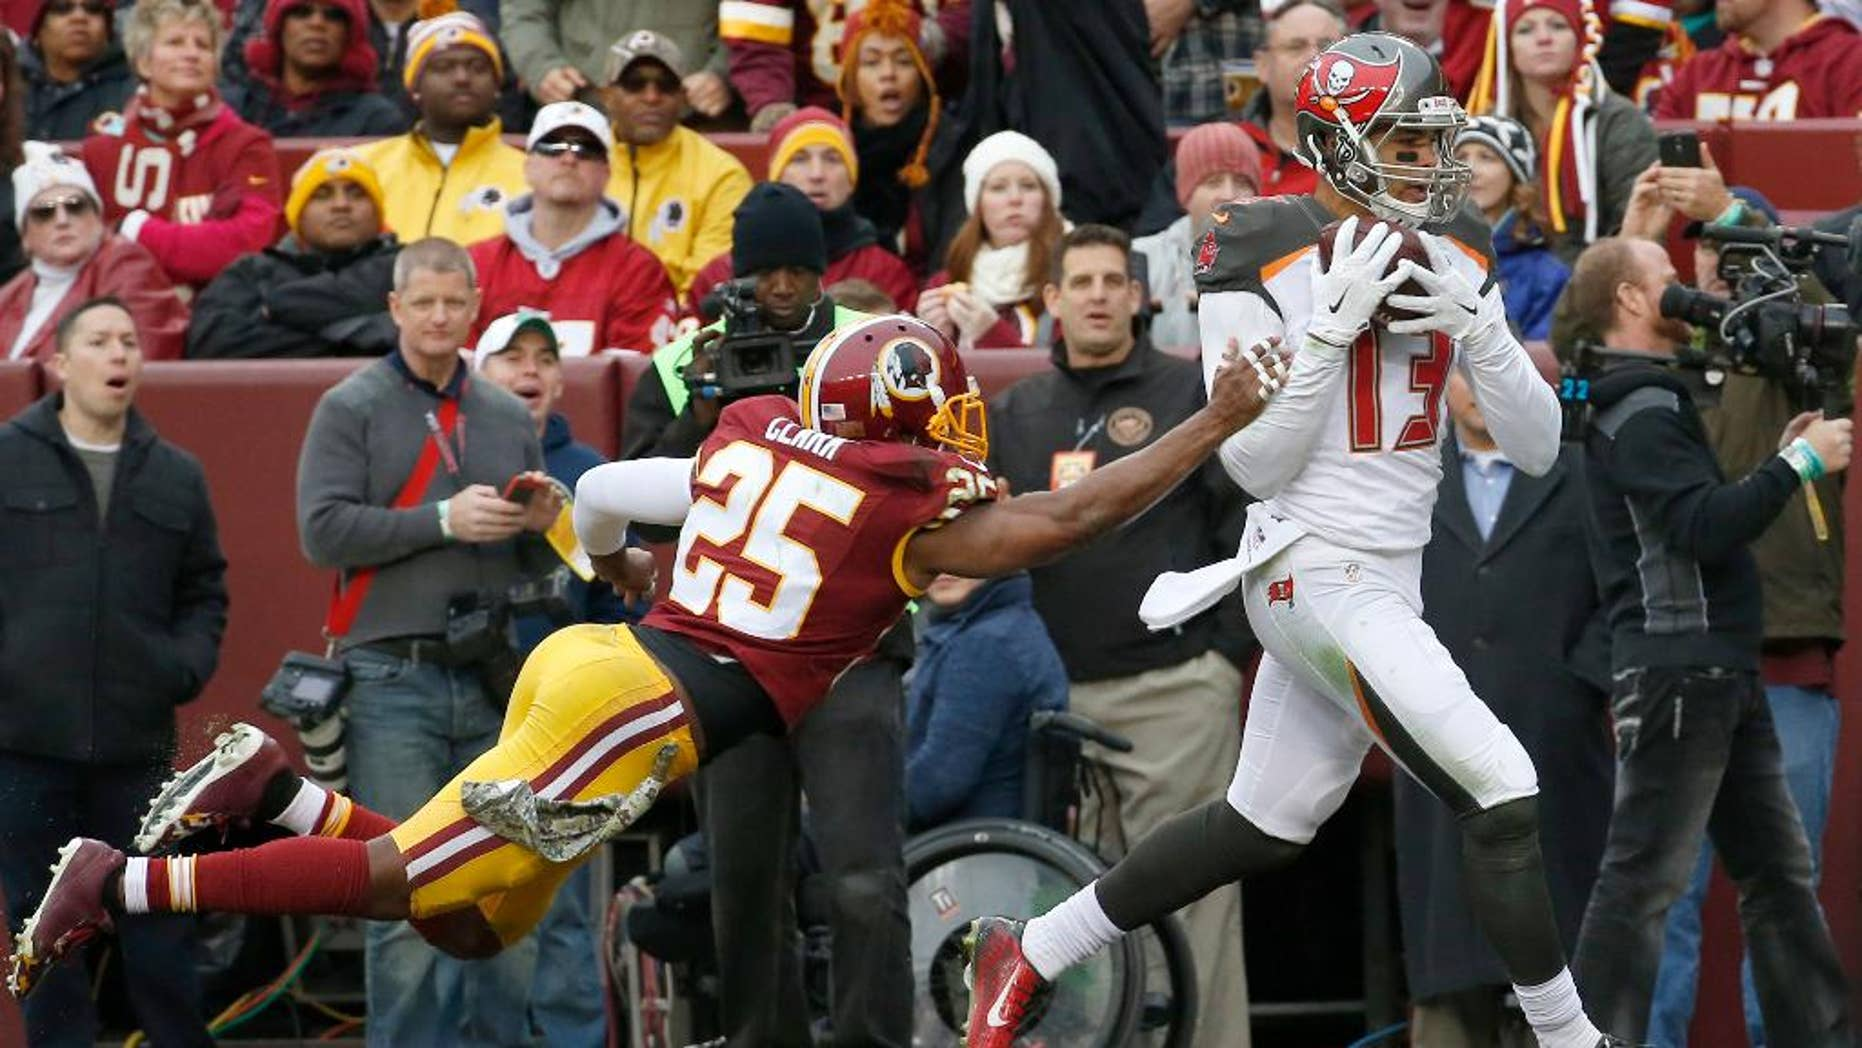 Tampa Bay Buccaneers wide receiver Mike Evans (13) pulls in a touchdown pass under pressure from Washington Redskins free safety Ryan Clark (25) during the second half of an NFL football game in Landover, Md., Sunday, Nov. 16, 2014. (AP Photo/Alex Brandon)